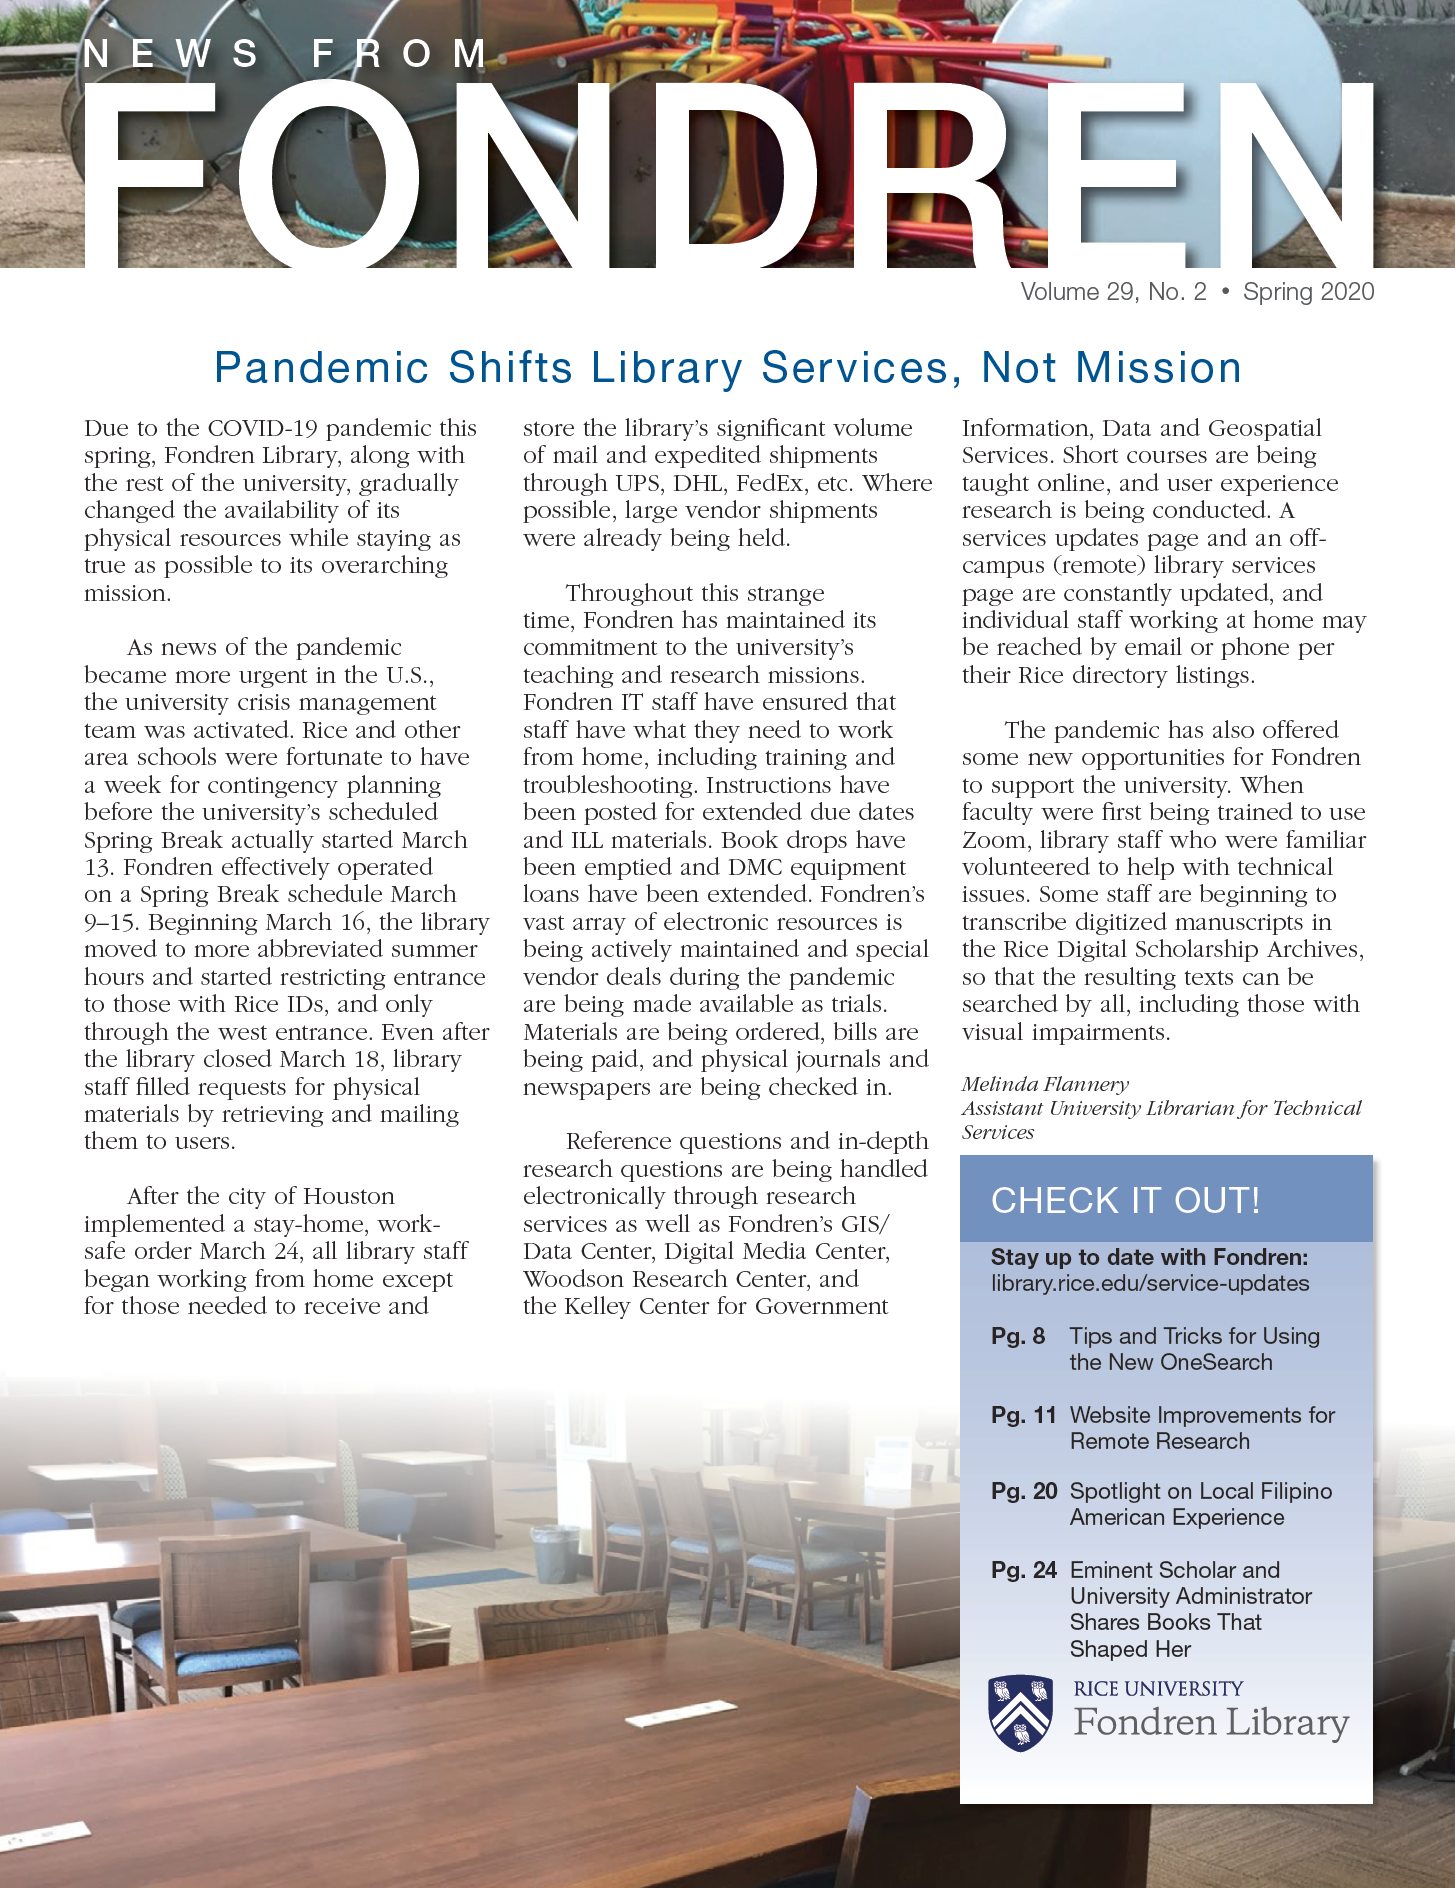 News from Fondren Spring 2020 Cover